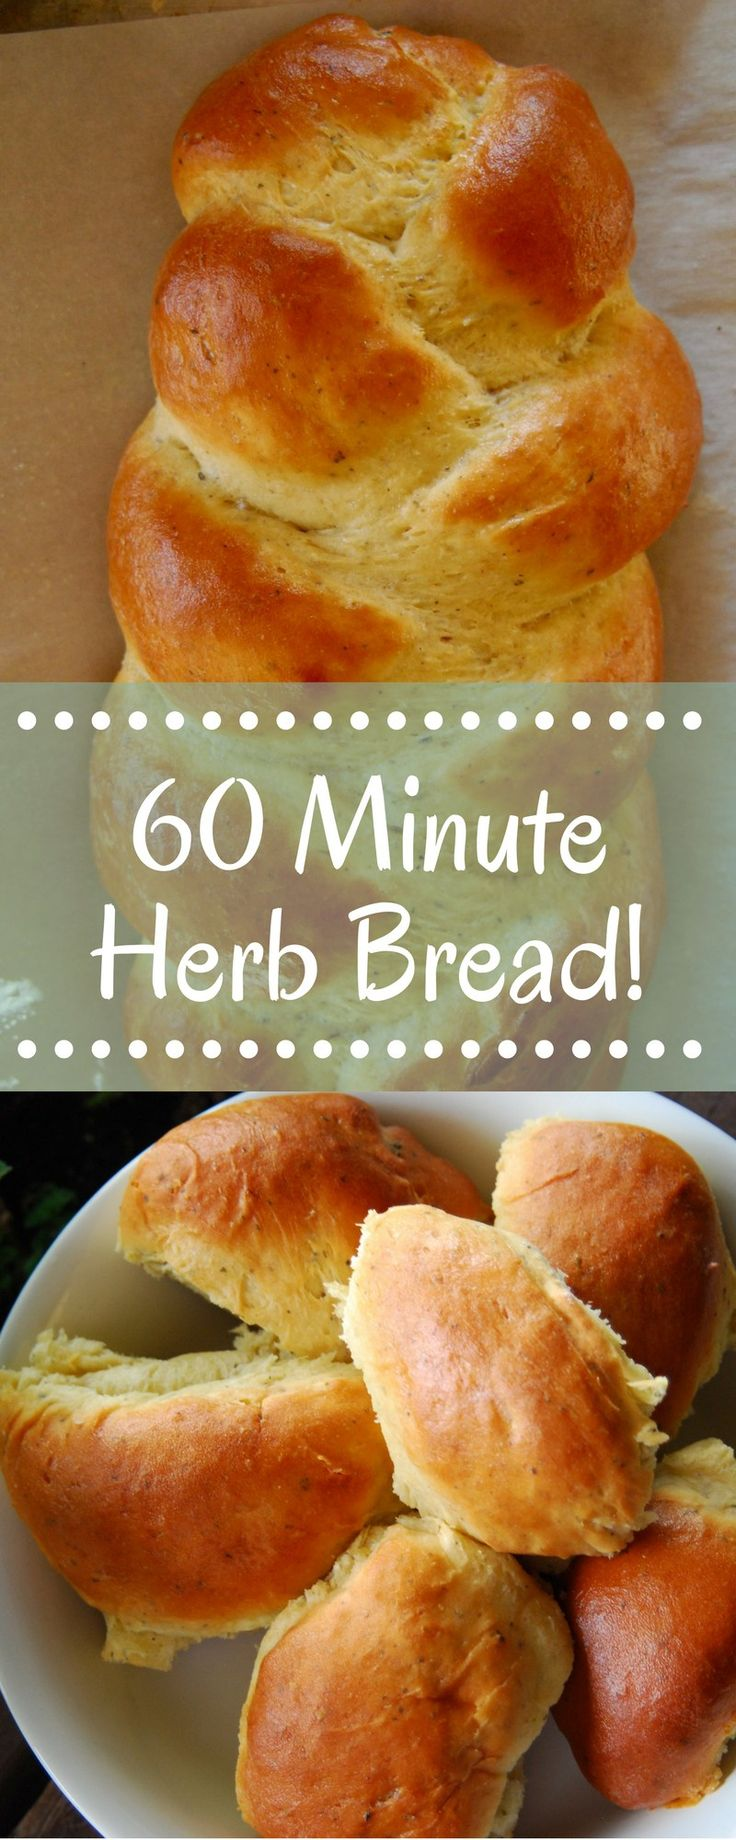 This 60 minute homemade herb bread is not only a showstopper, it's delicious and one of the easiest yeast breads you'll make! Perfect for the beginning baker or the seasoned bread pro.